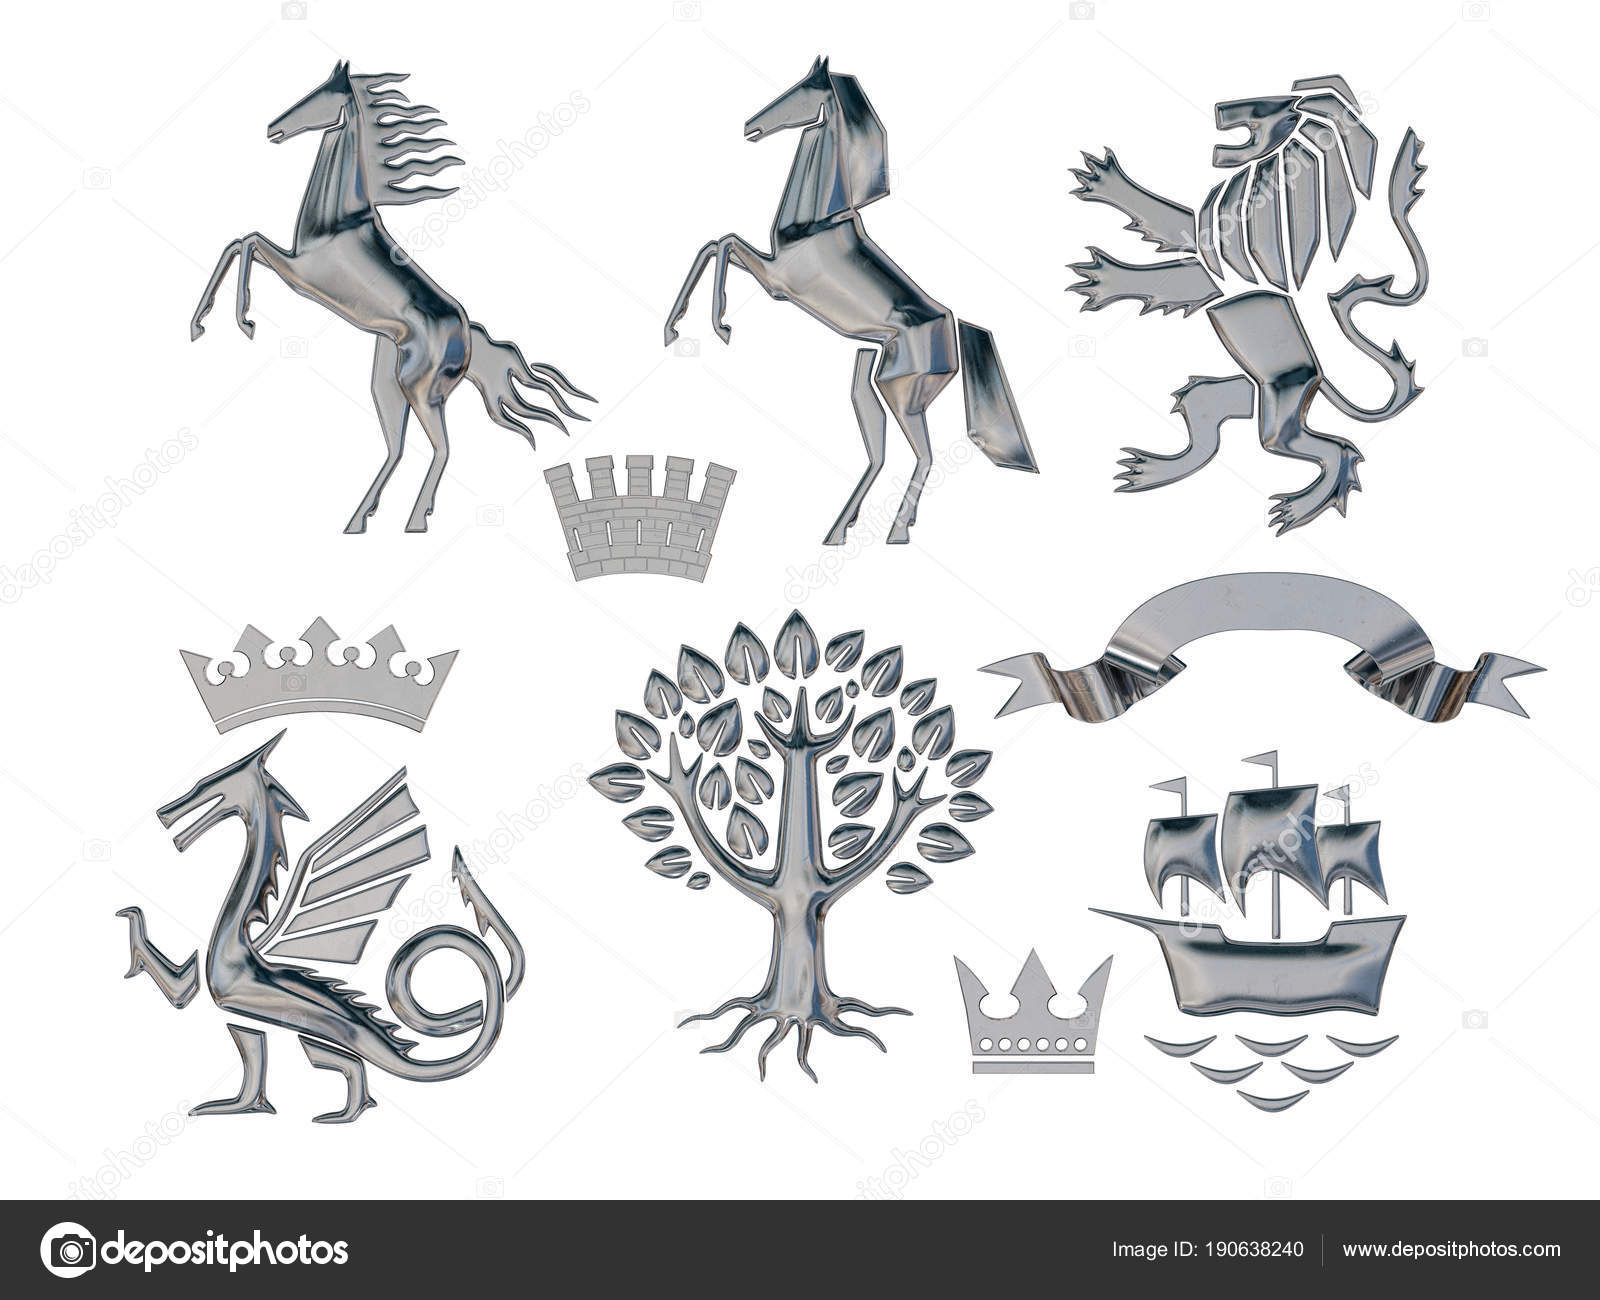 Illustration Rendering Set Silver Heraldic Symbols Lion